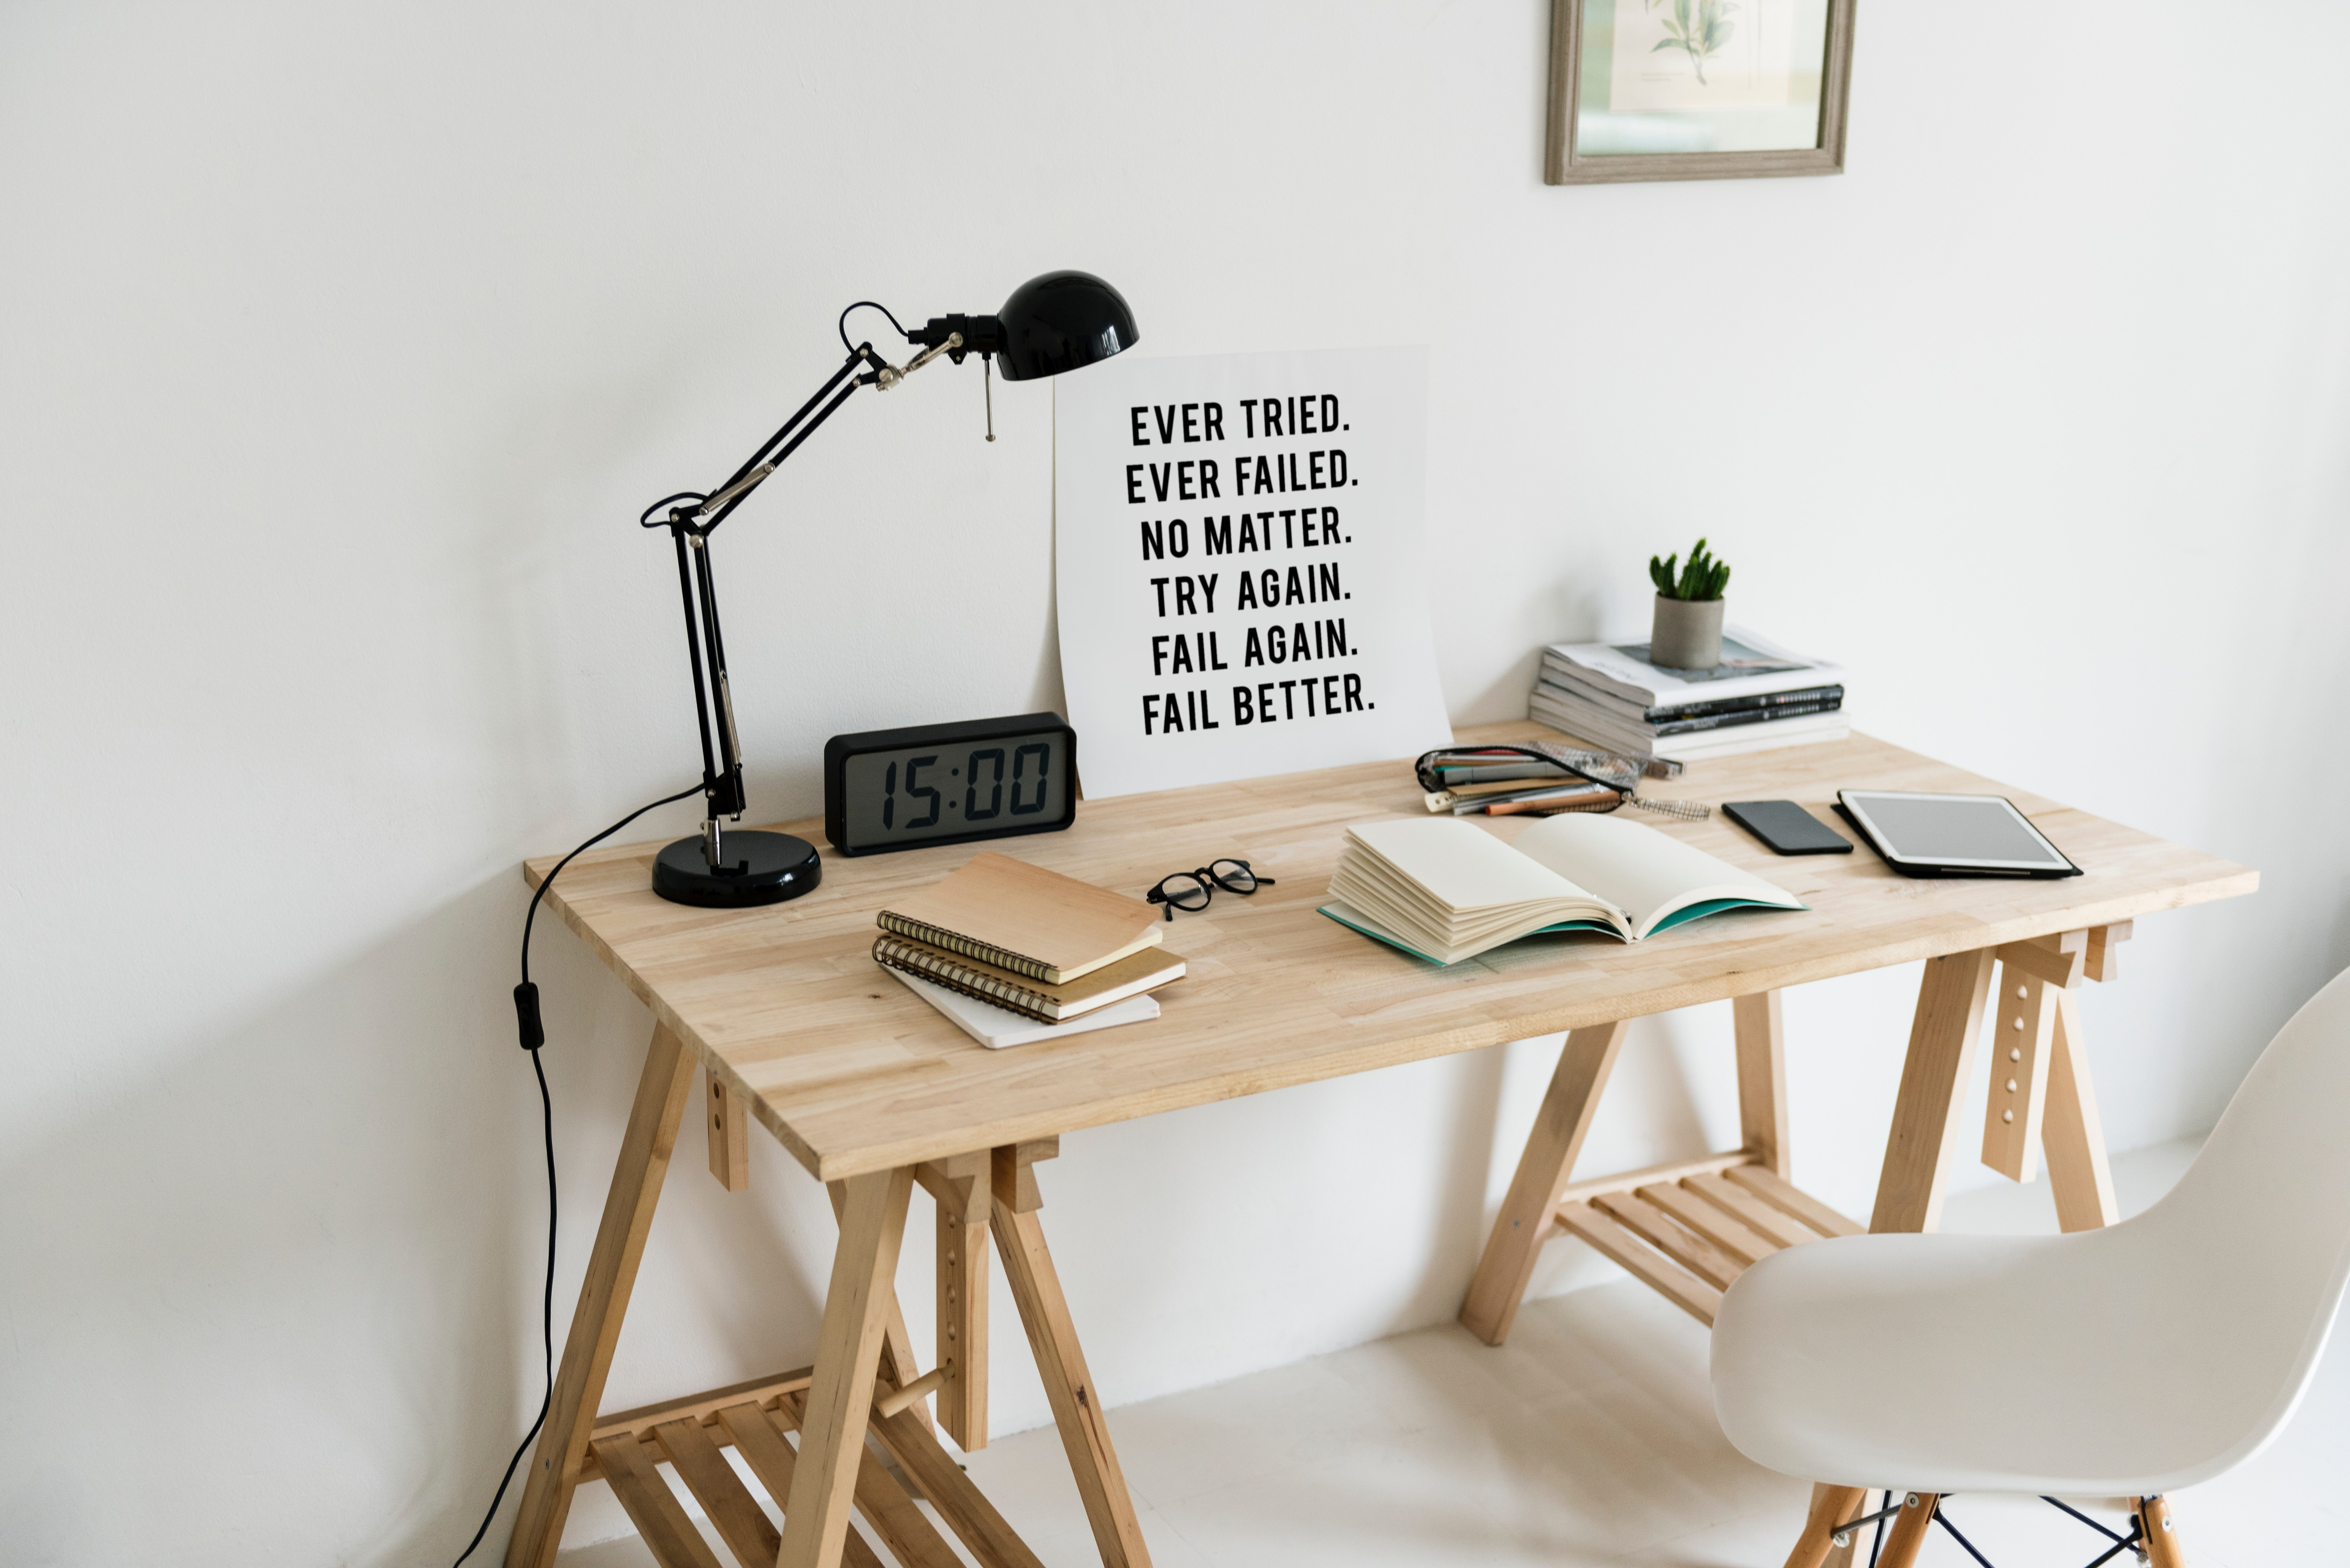 Wooden Desk With Books On Top, Books, Room, Wooden table, Time, HQ Photo